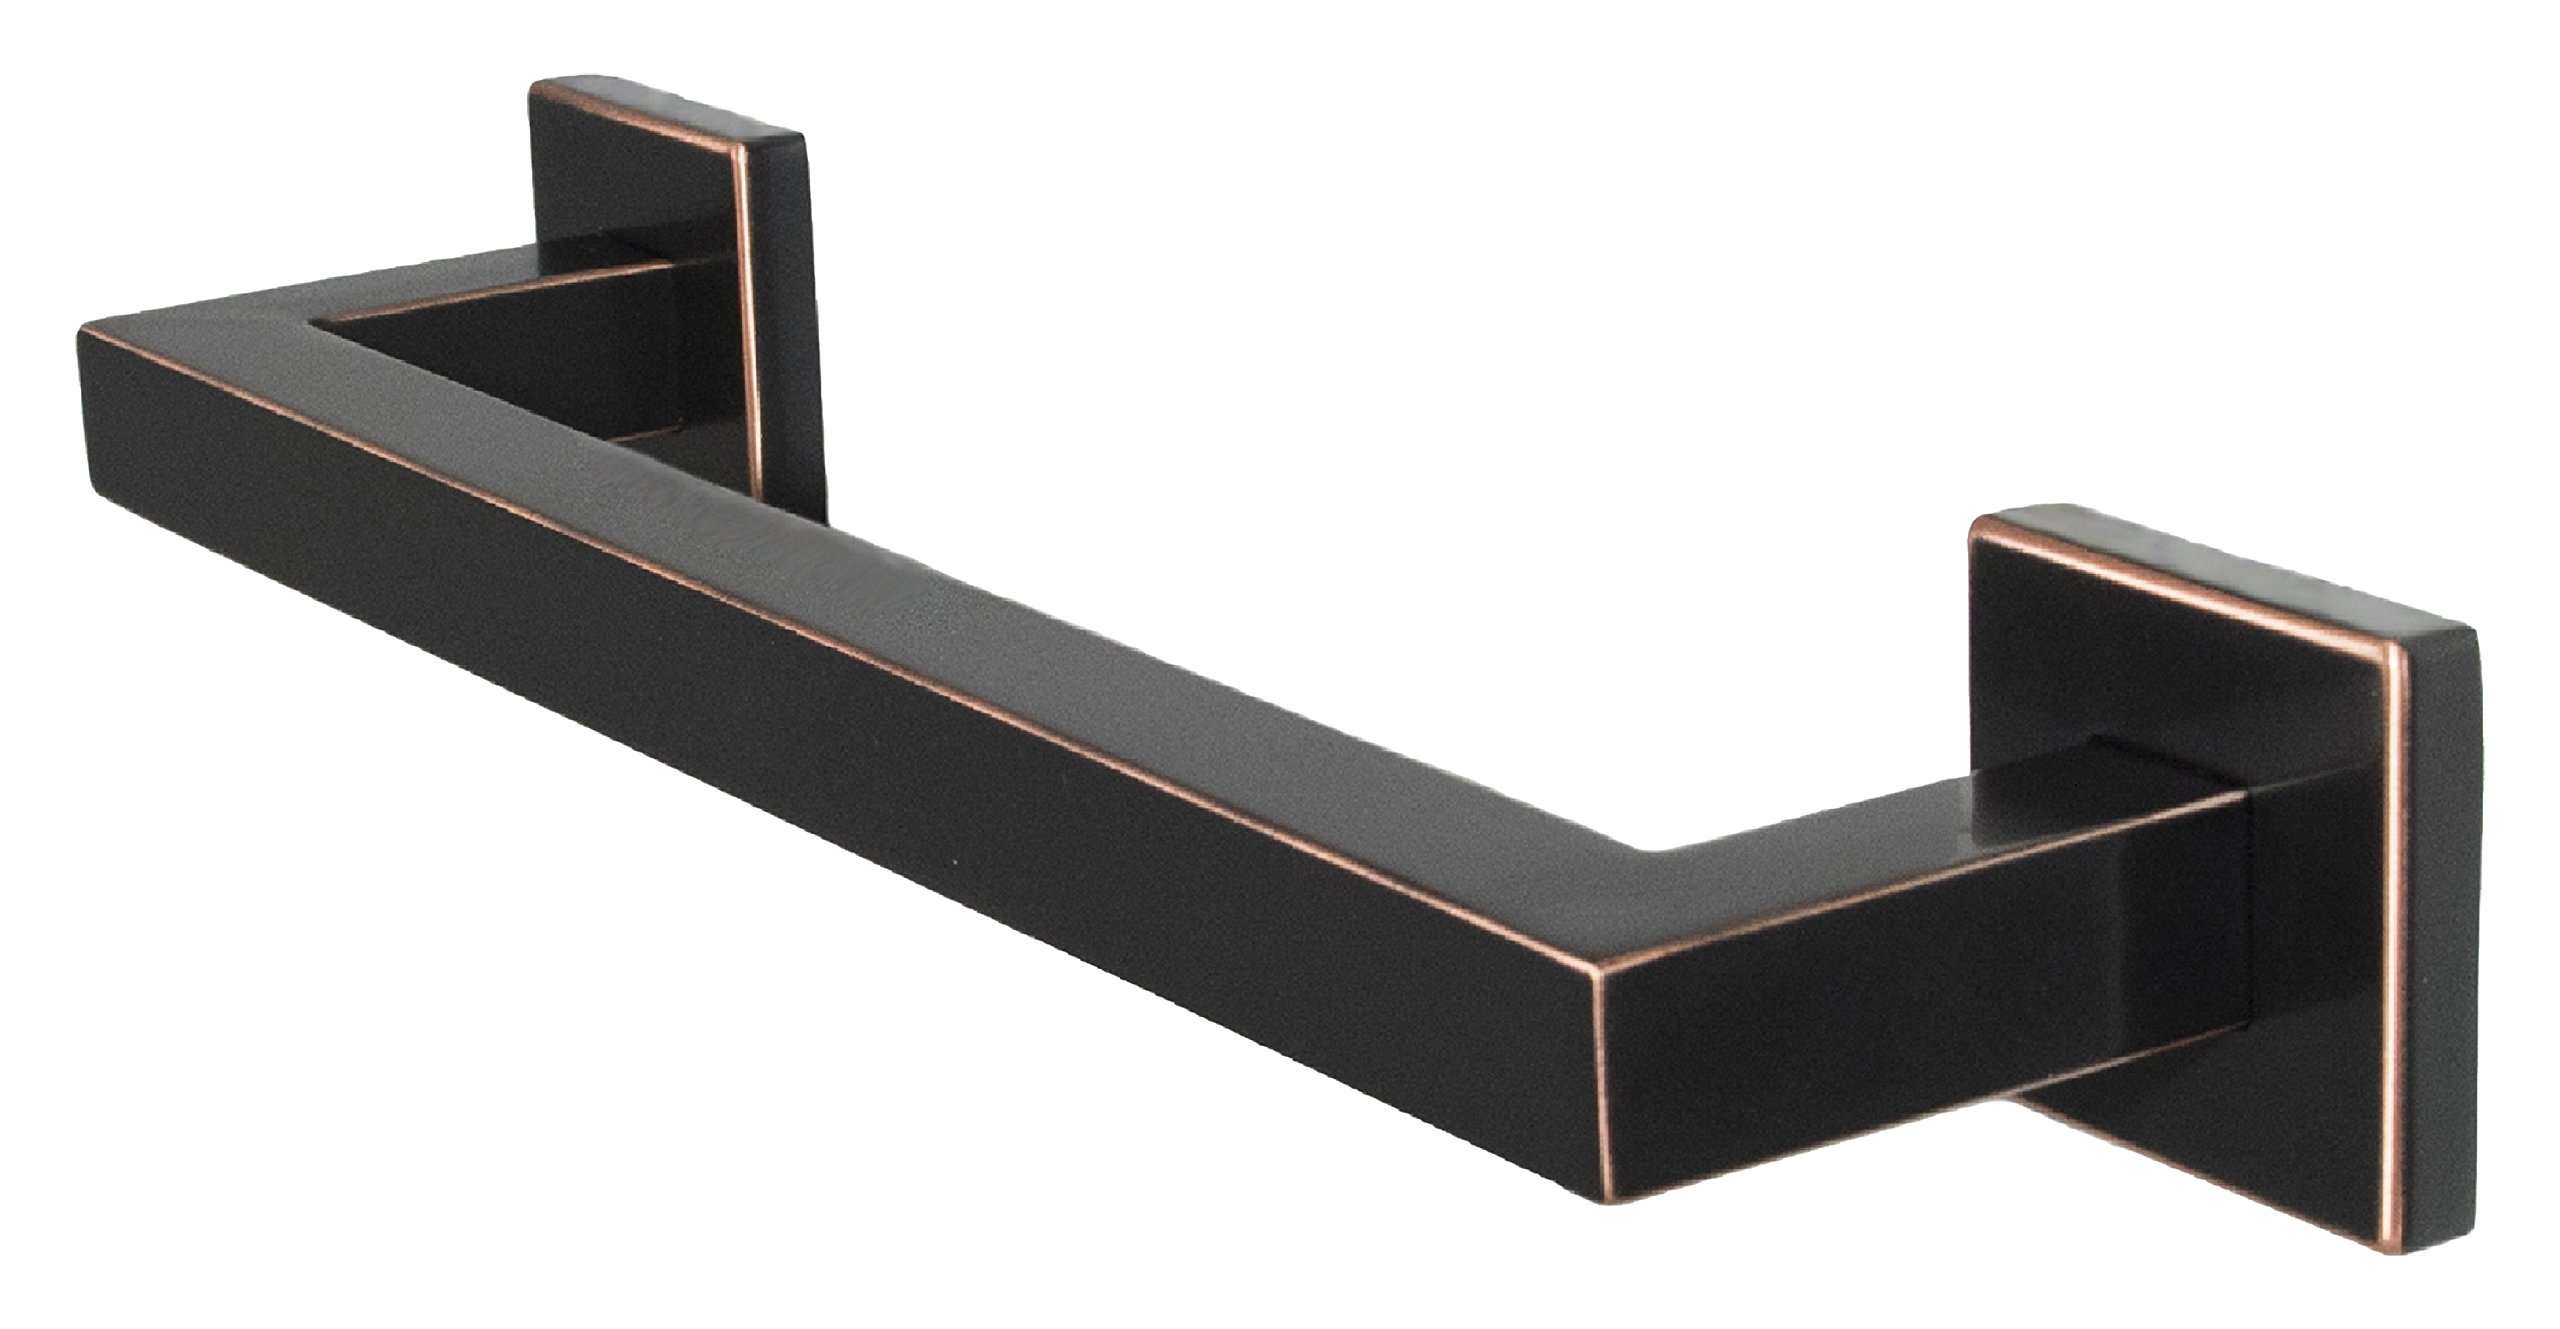 Preferred Bath Accessories 1012-ORB-MV Primo Collection Mitered Towel Bar, 12'', Oil Rubbed Bronze